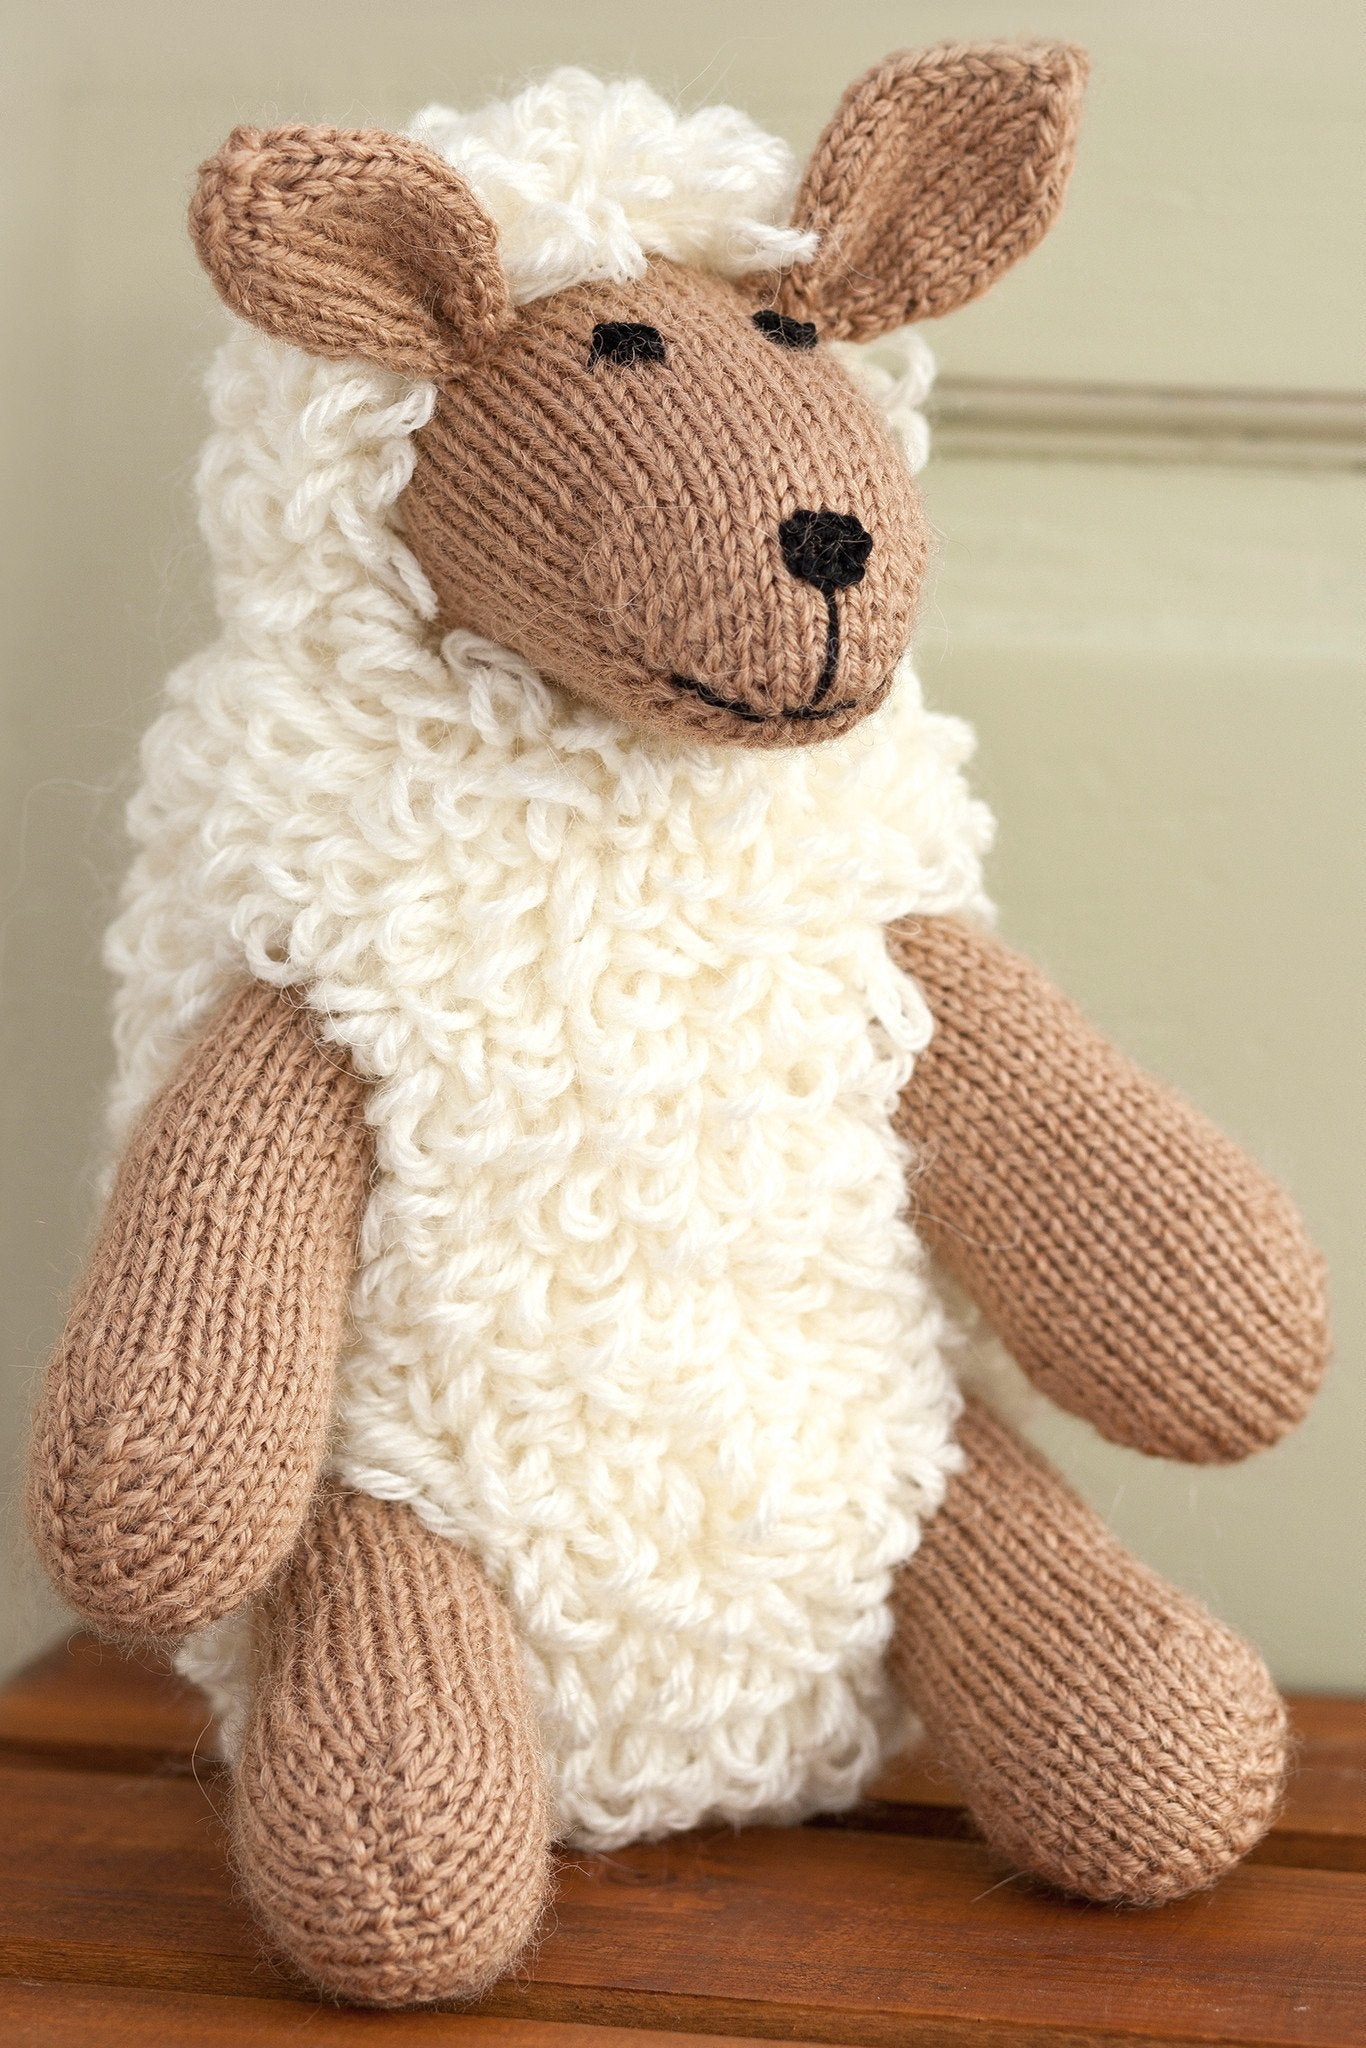 Sheep toy knitting pattern the knitting network sheep toy knitting pattern bankloansurffo Gallery